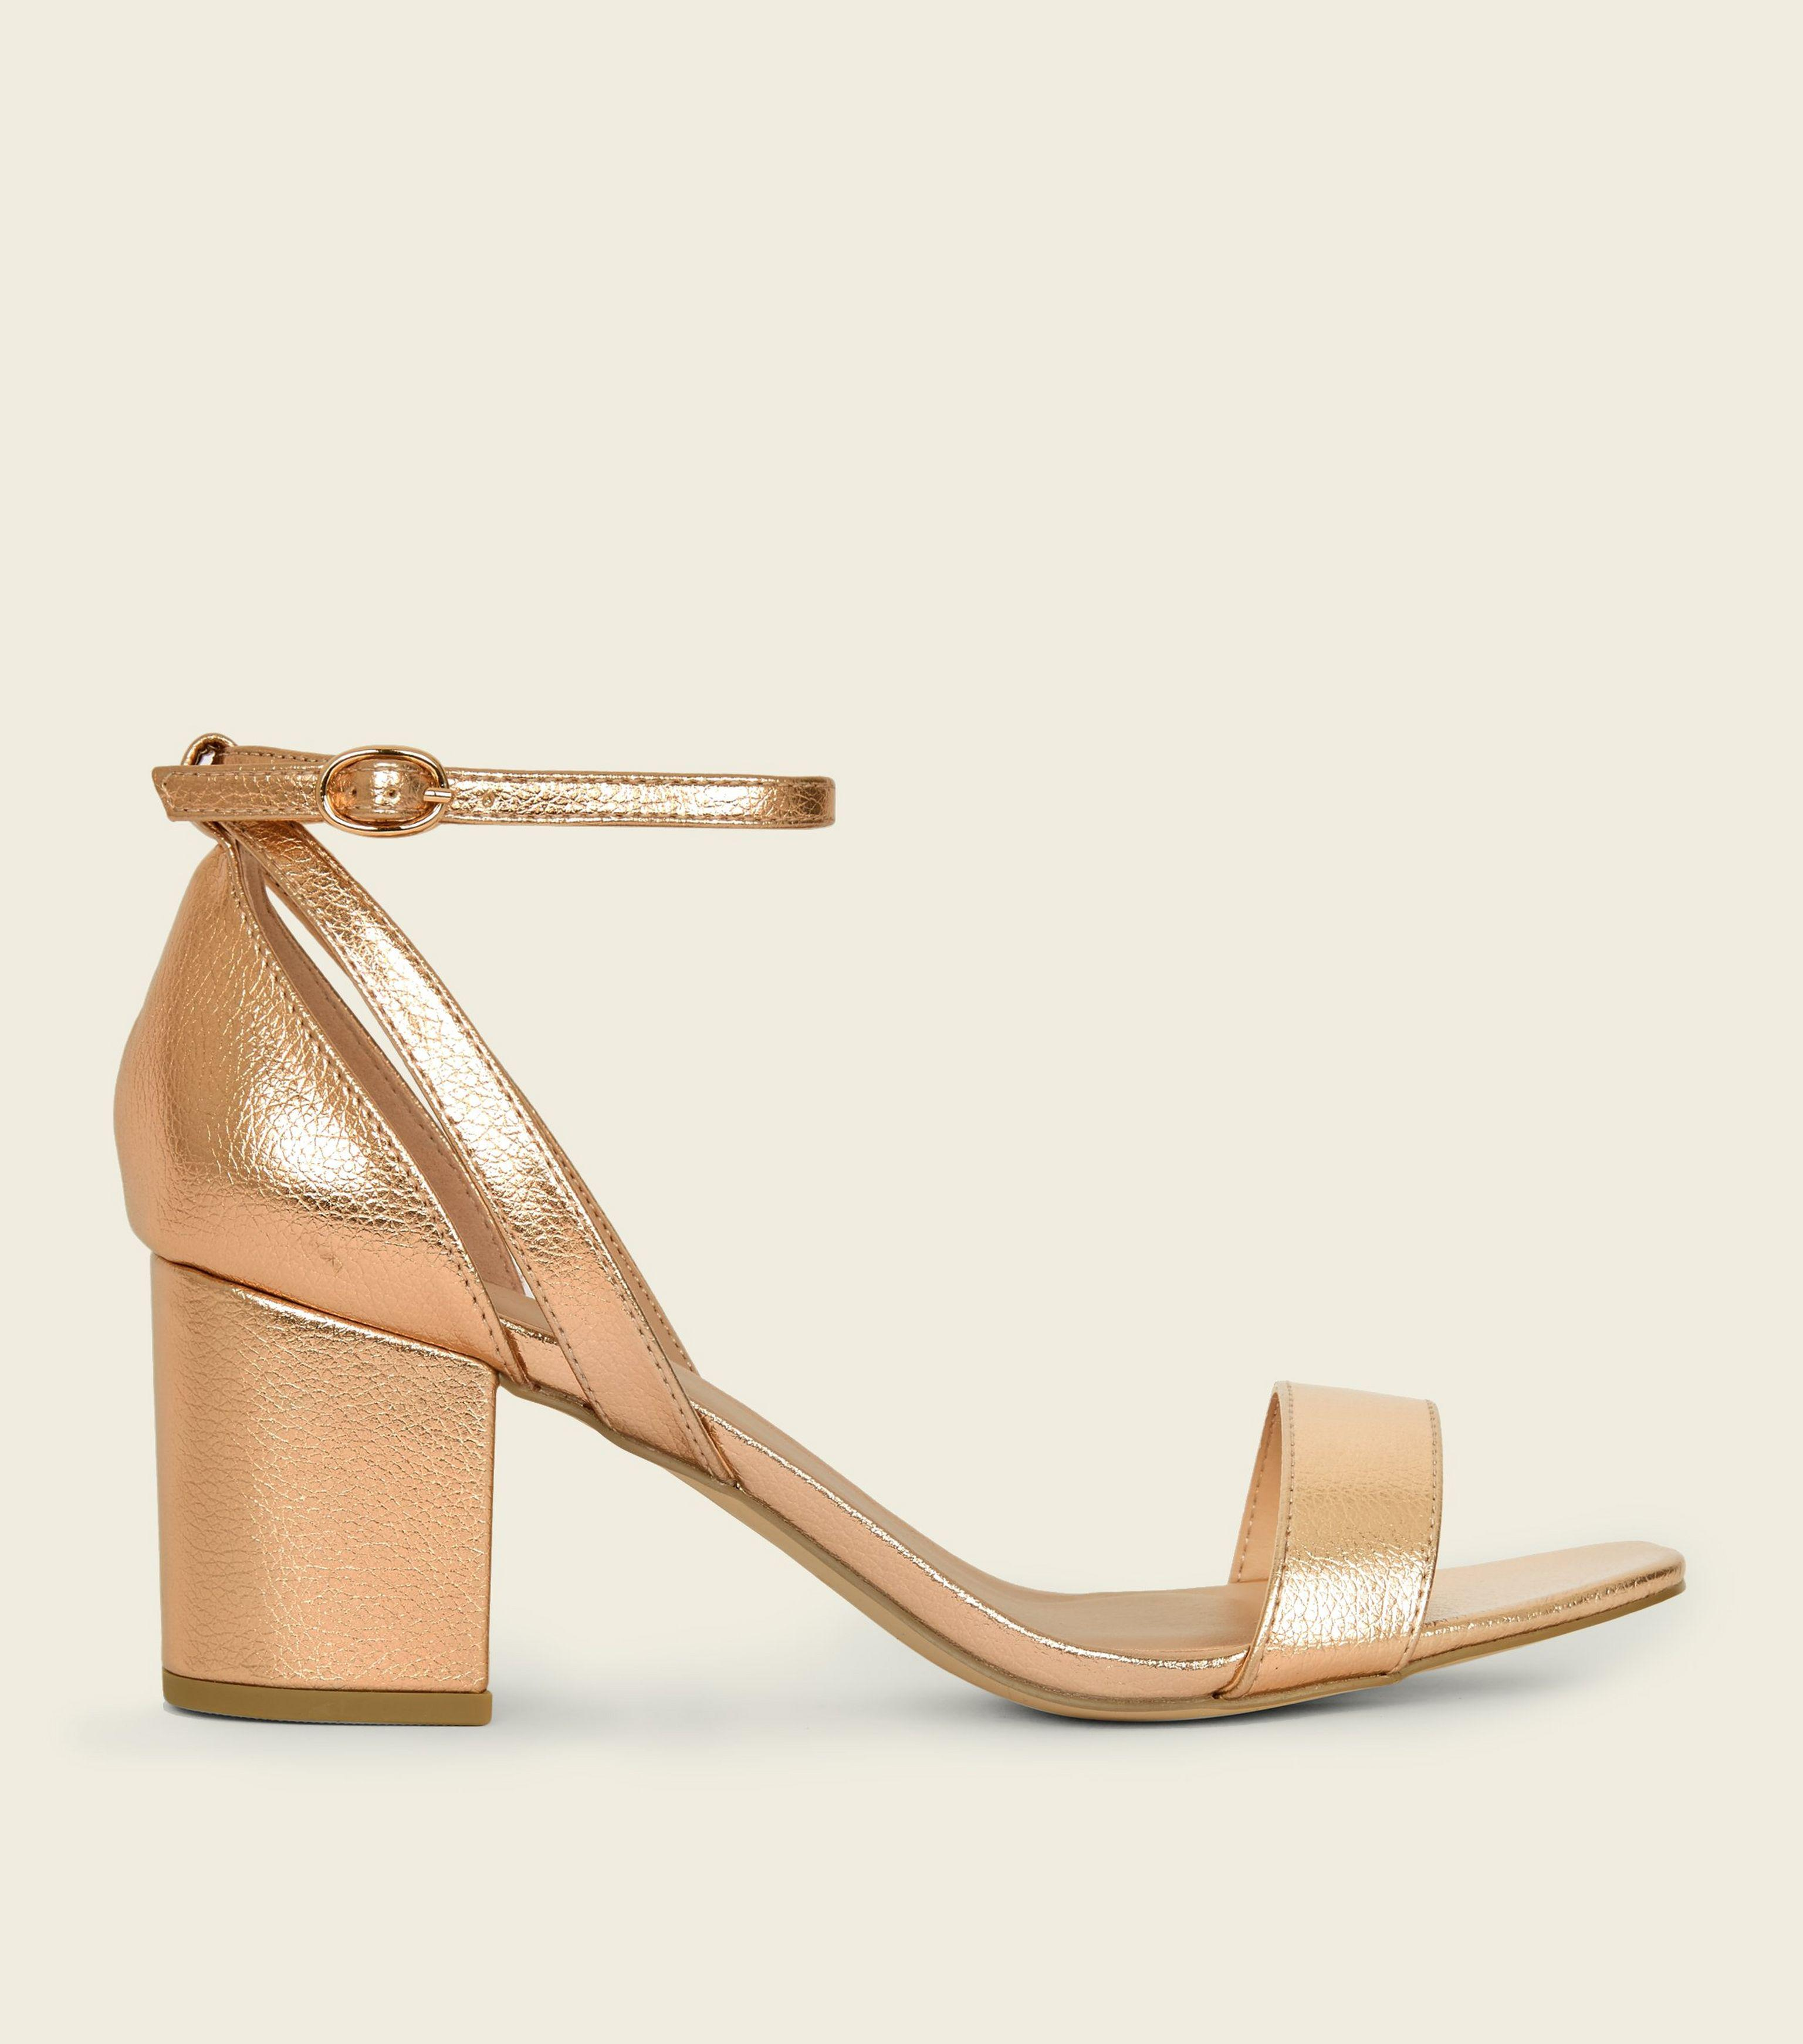 880a5afbde0 New Look Wide Fit Rose Gold Cut Out Mid Heel Sandals - Lyst